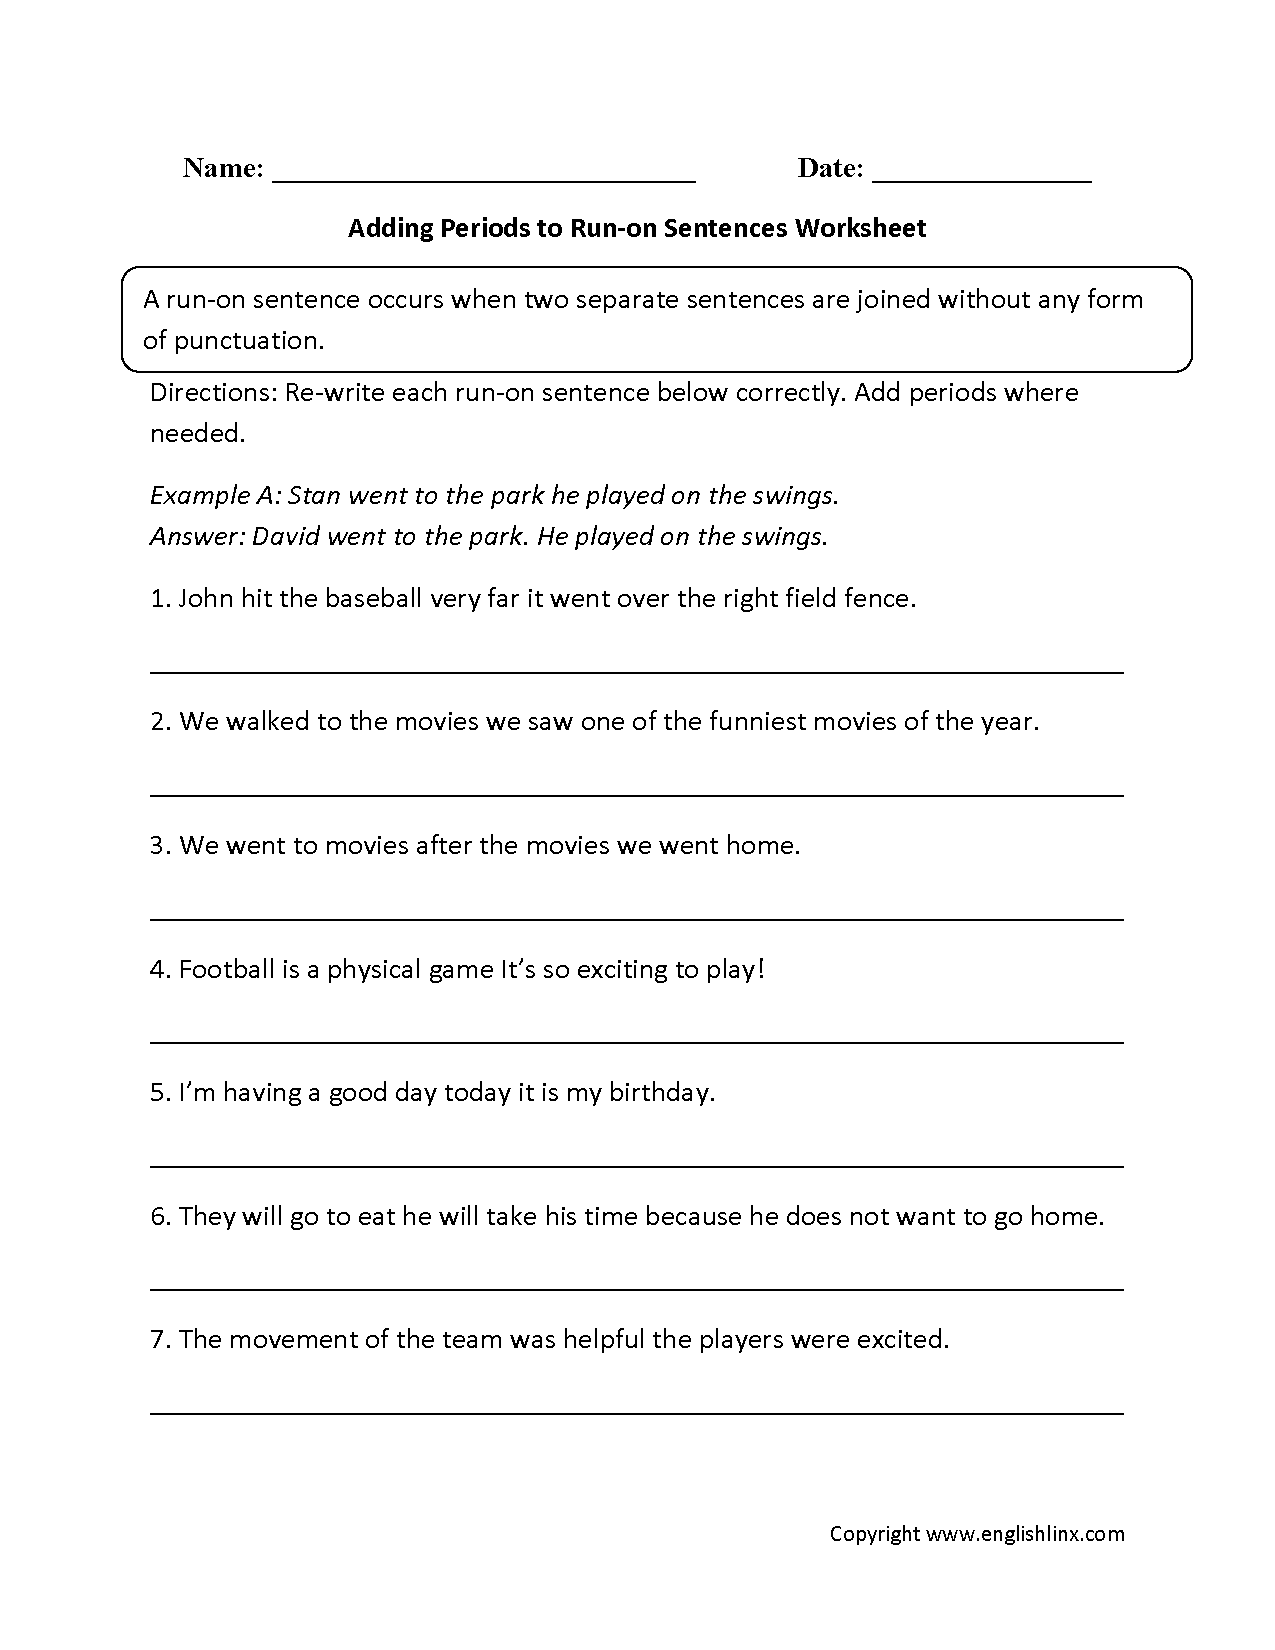 worksheet Run On Sentences And Fragments Worksheet adding periods to run on sentences worksheets englishlinx com worksheets